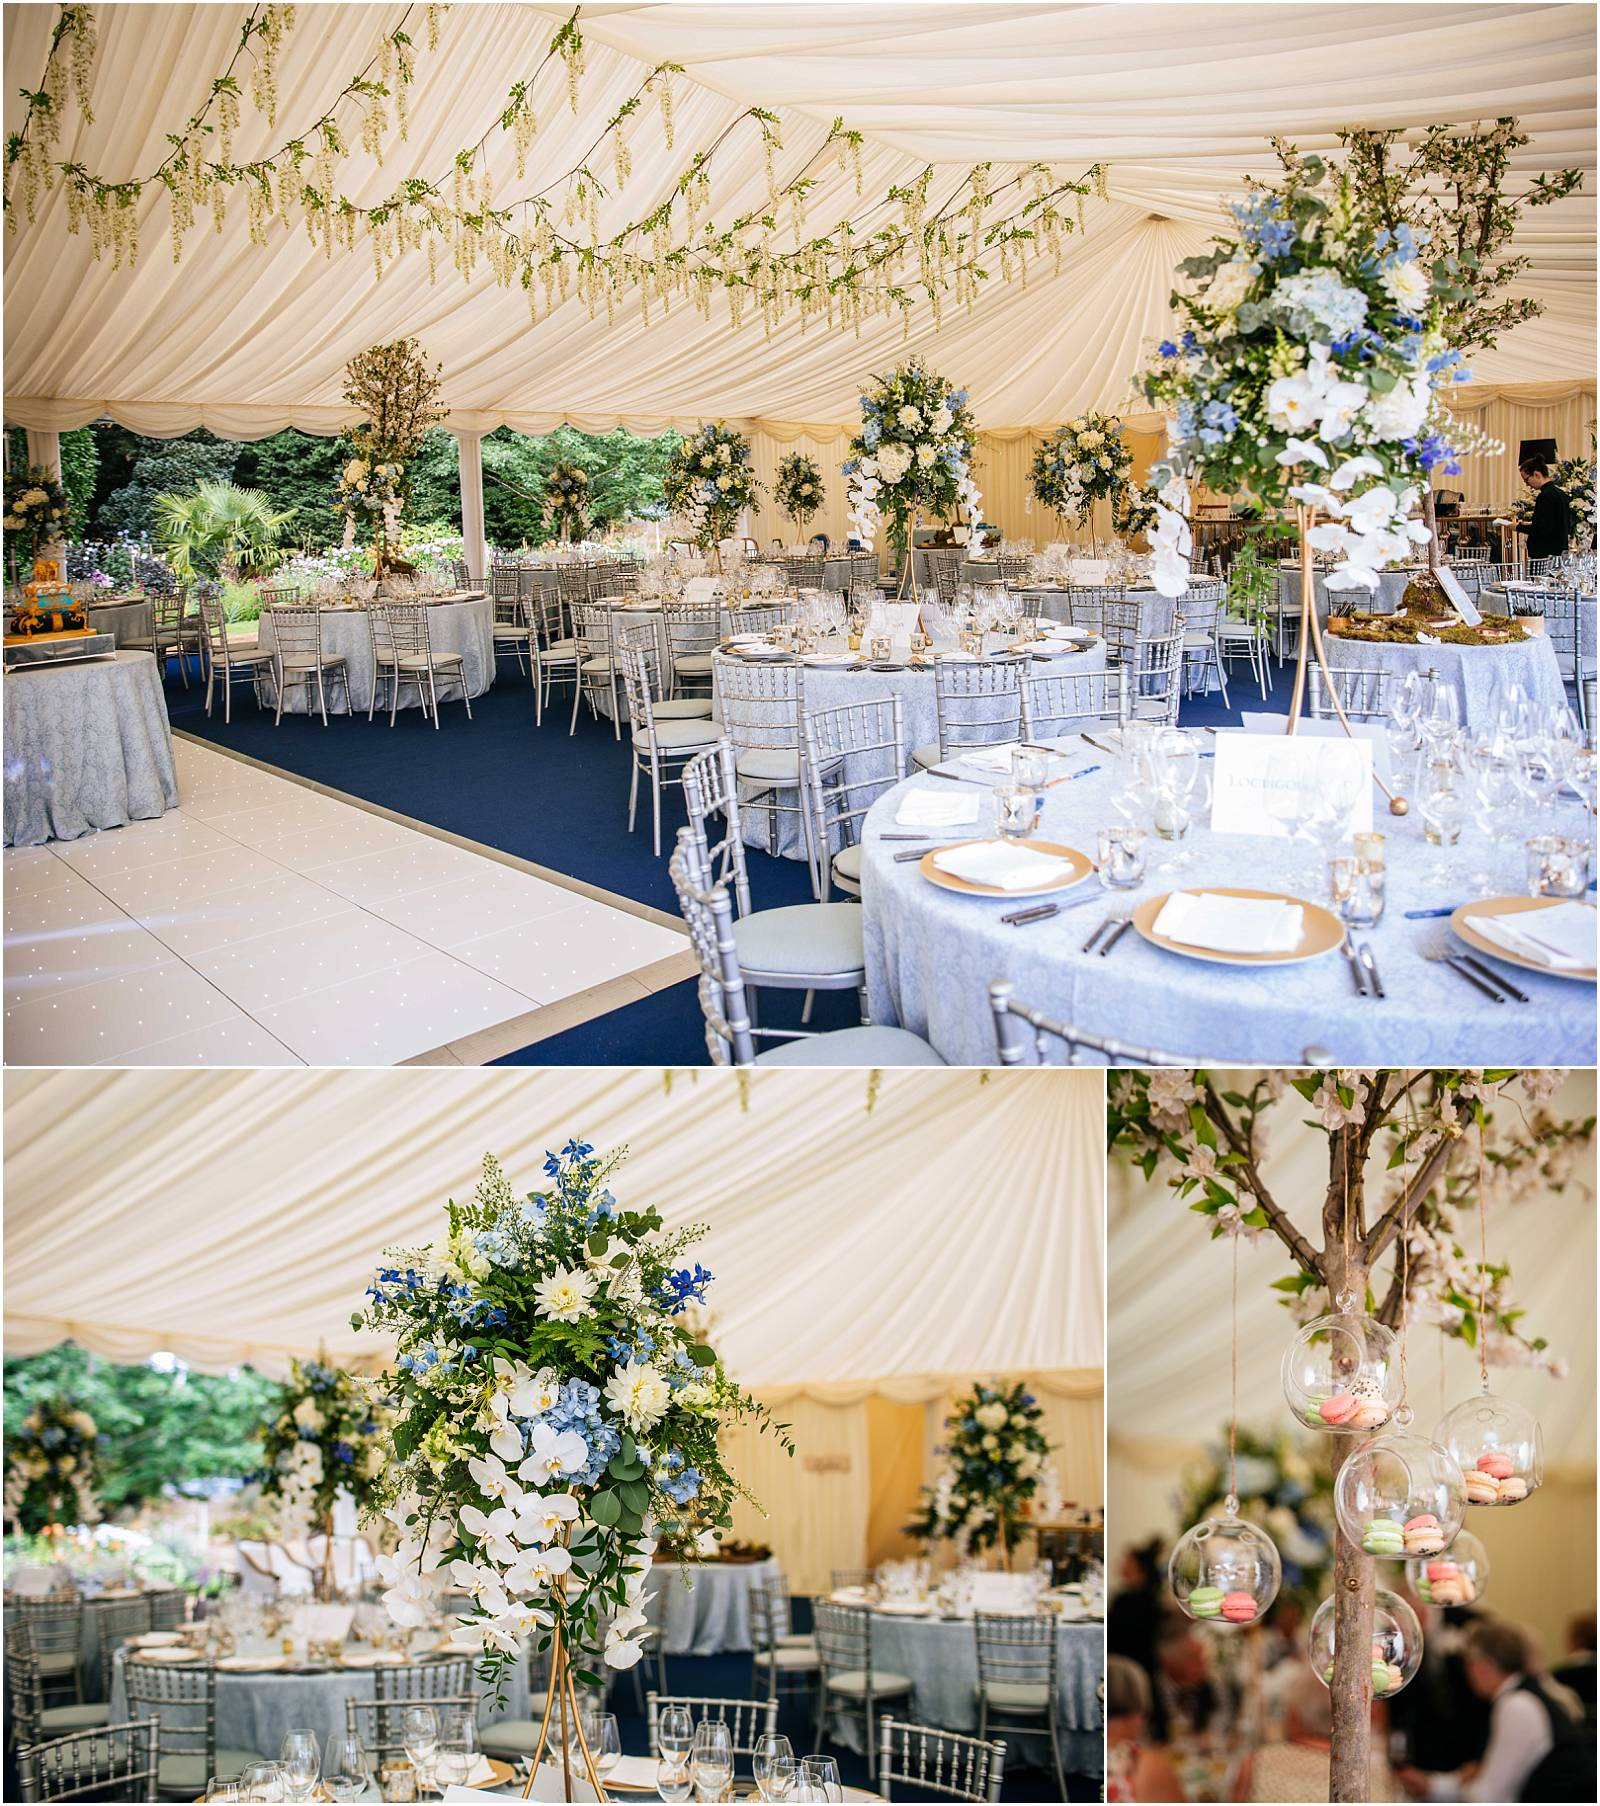 Stunning marquee wedding